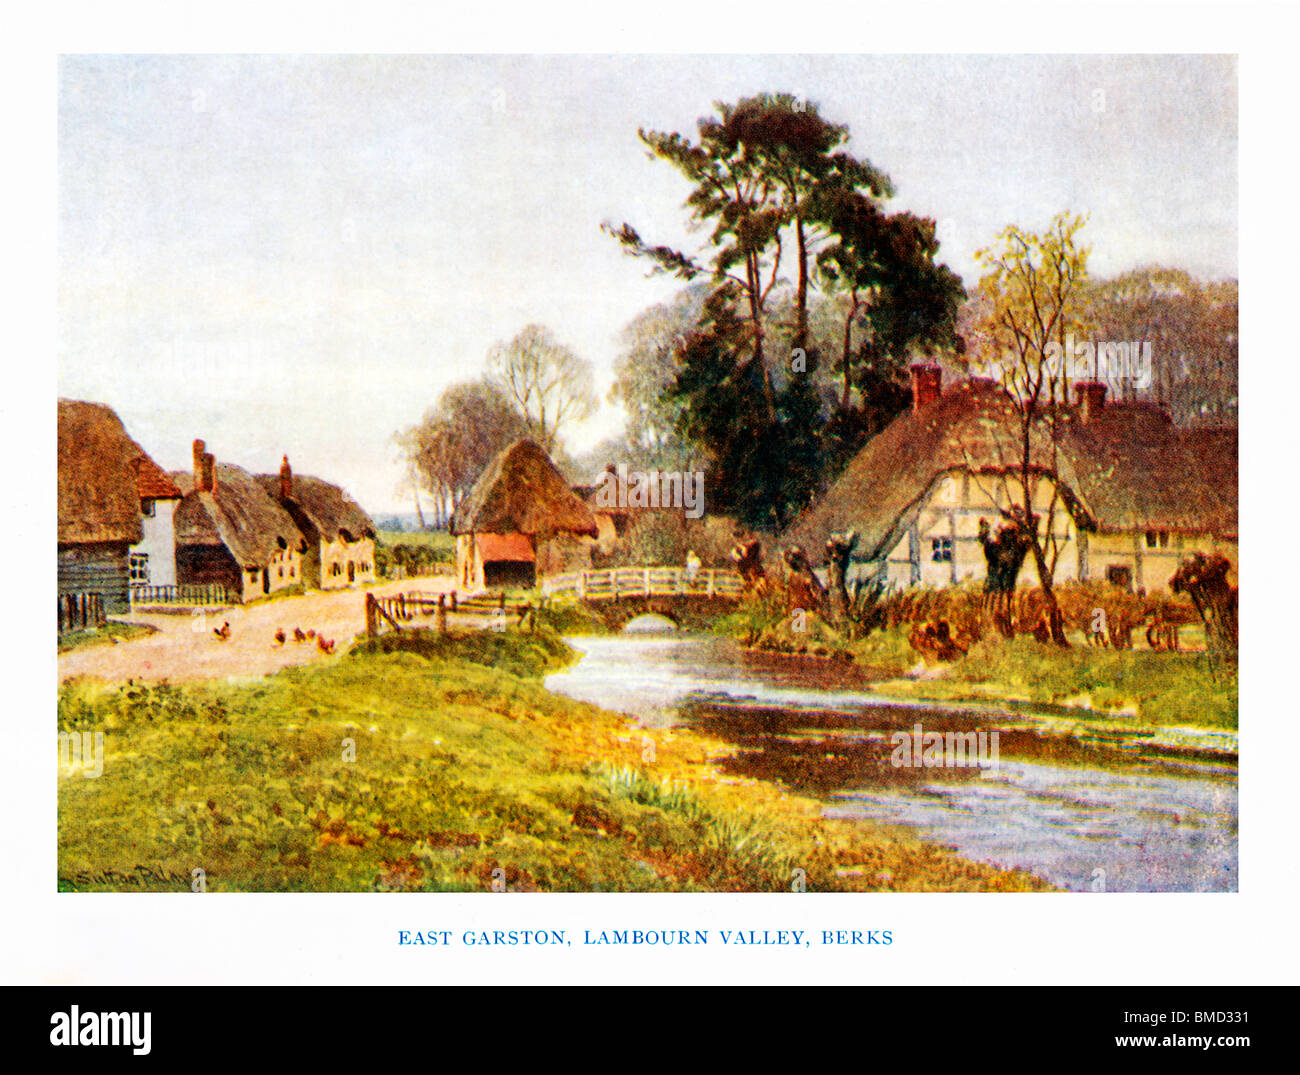 East Garston, Lambourne Valley, Berks, 1920 watercolour by Sutton Palmer of a village idyll in the Royal county - Stock Image